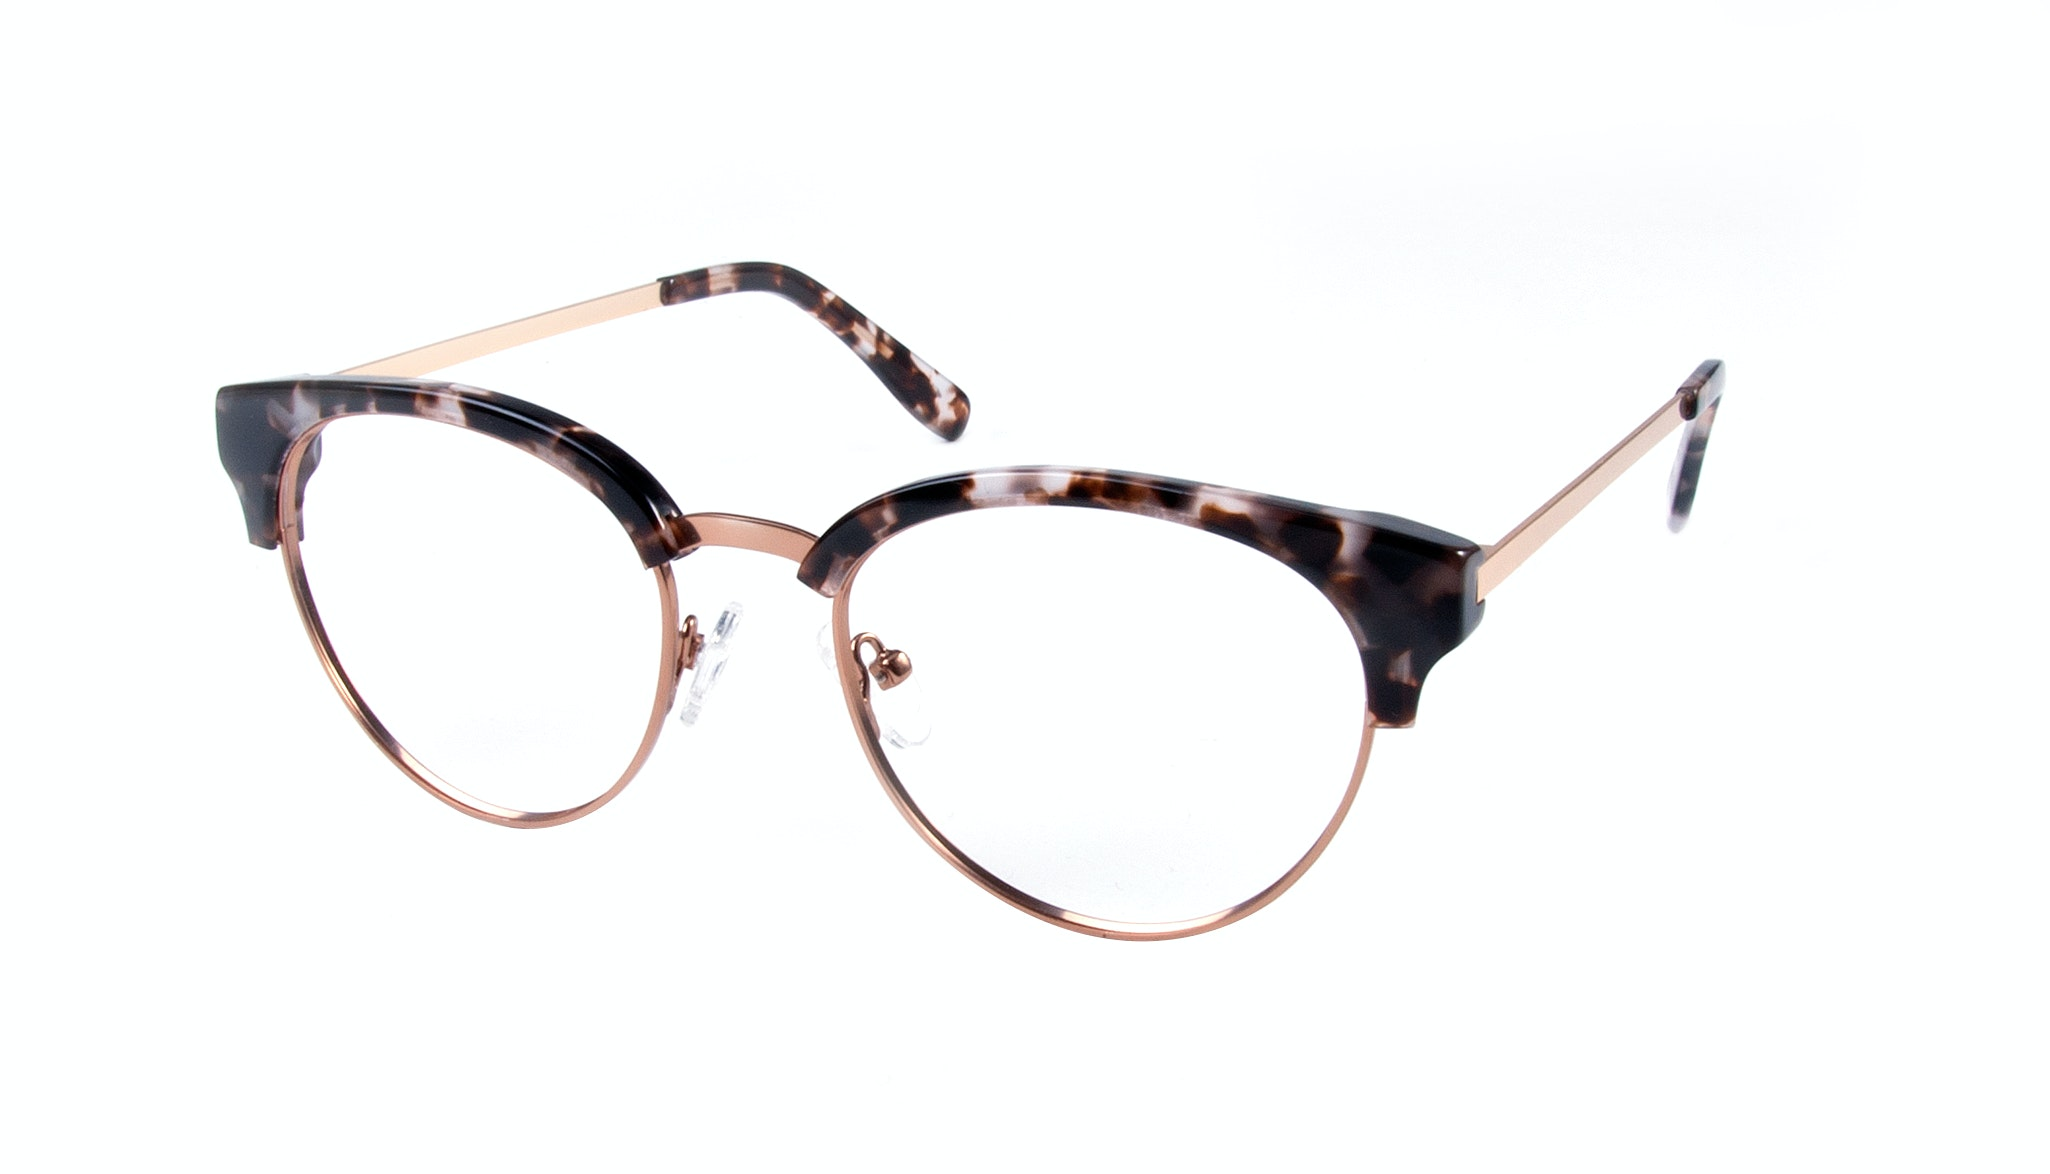 Affordable Fashion Glasses Round Eyeglasses Women Allure Mocha Tortoise Tilt